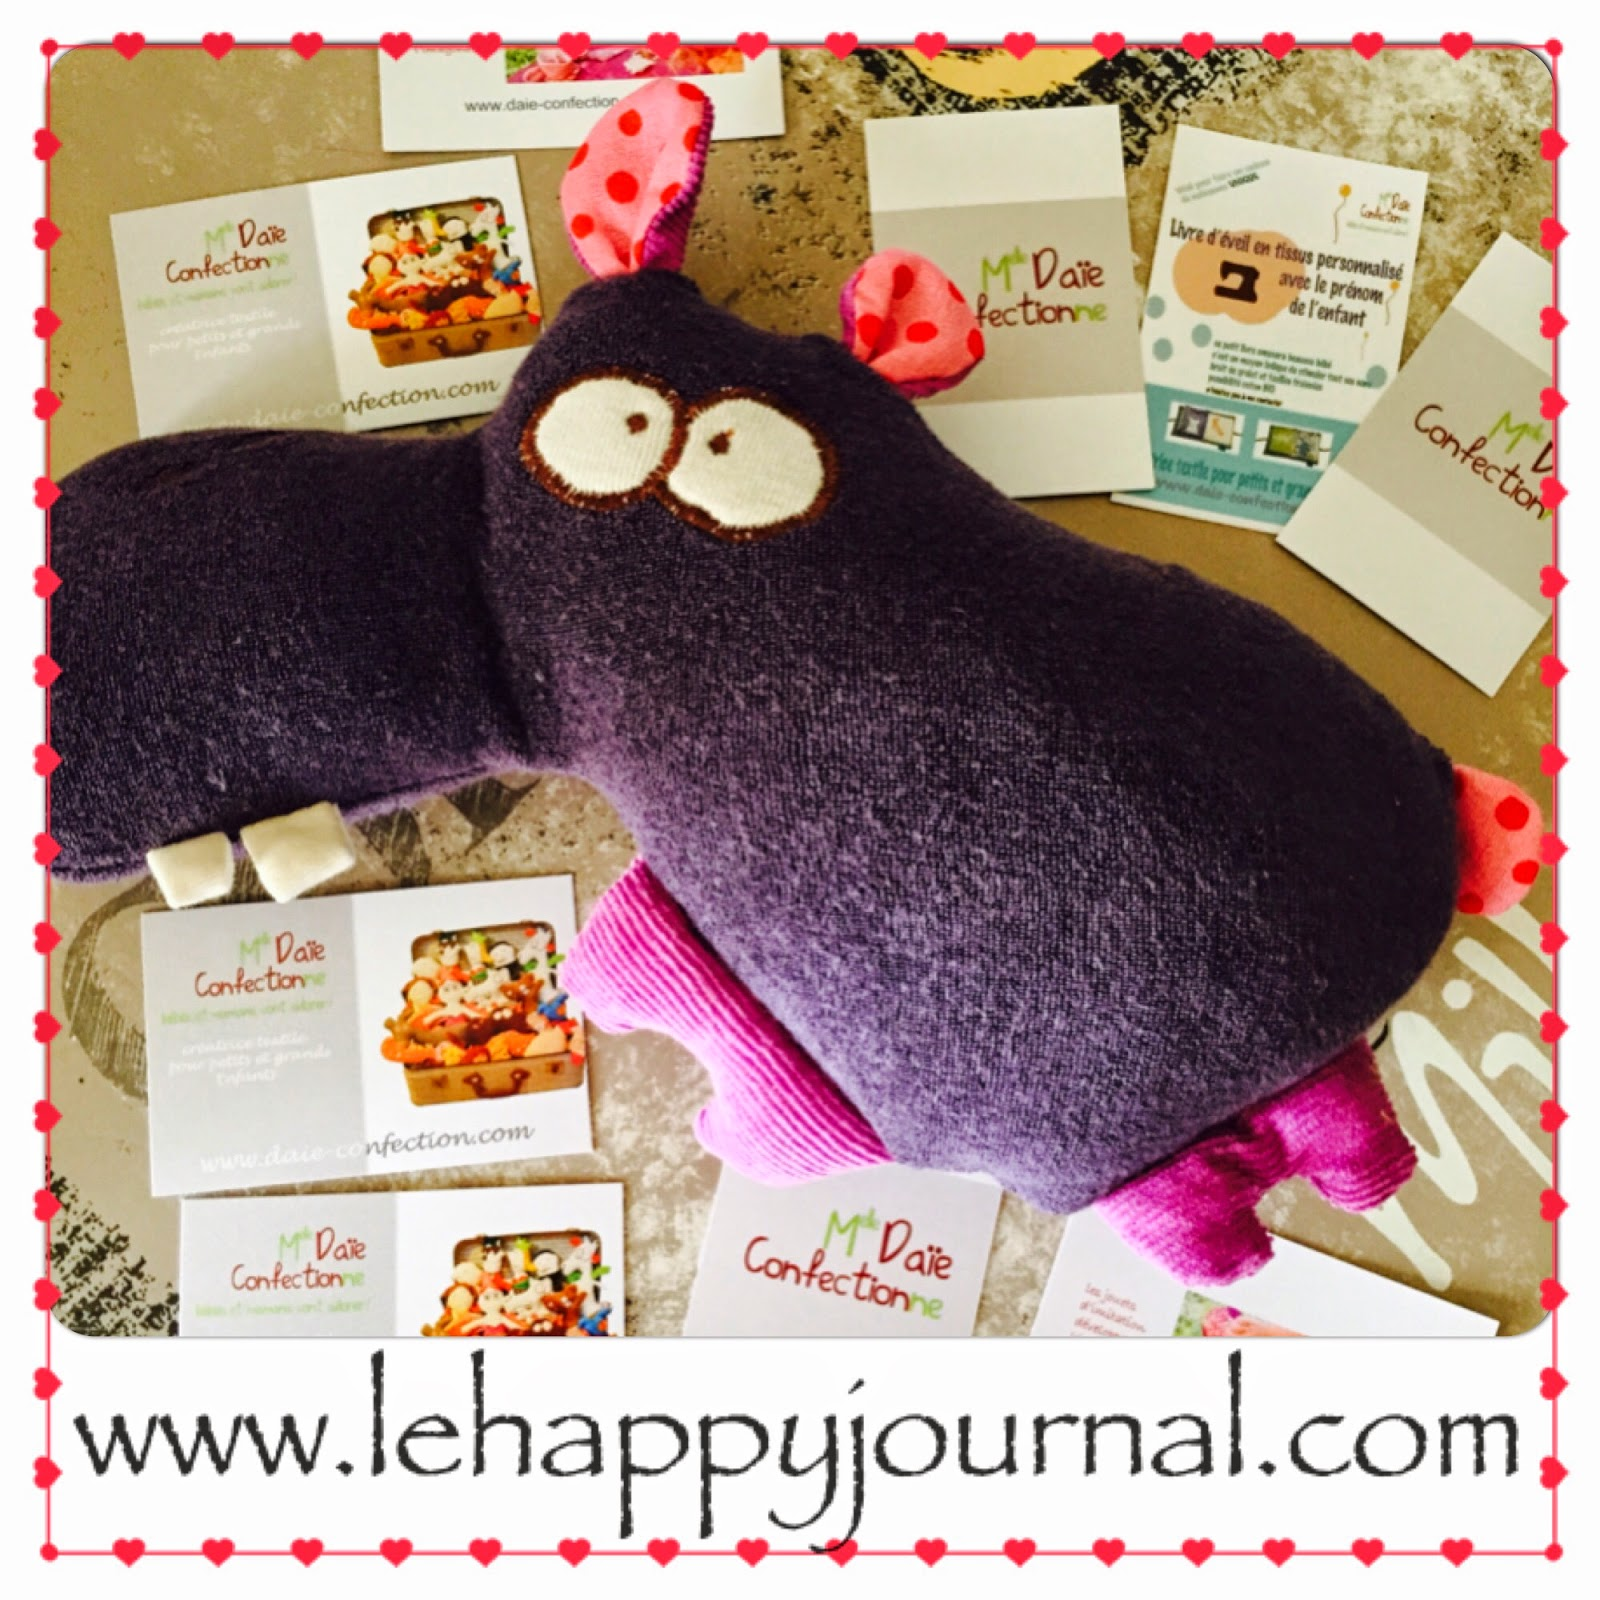 Melle Daie confection, doudou, couverture, coton bio, hippo, dessin en doudou, partenaire, happy journal